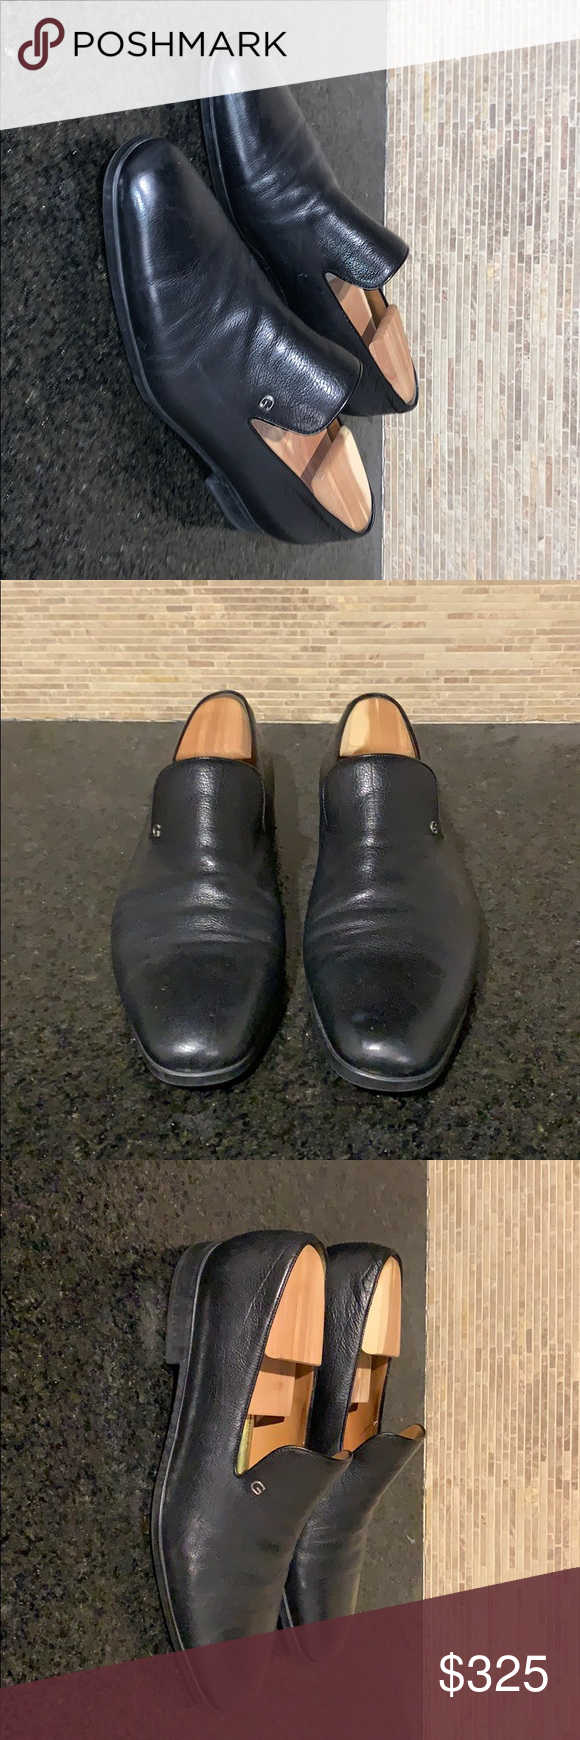 Gucci Loafers Rubber Sole